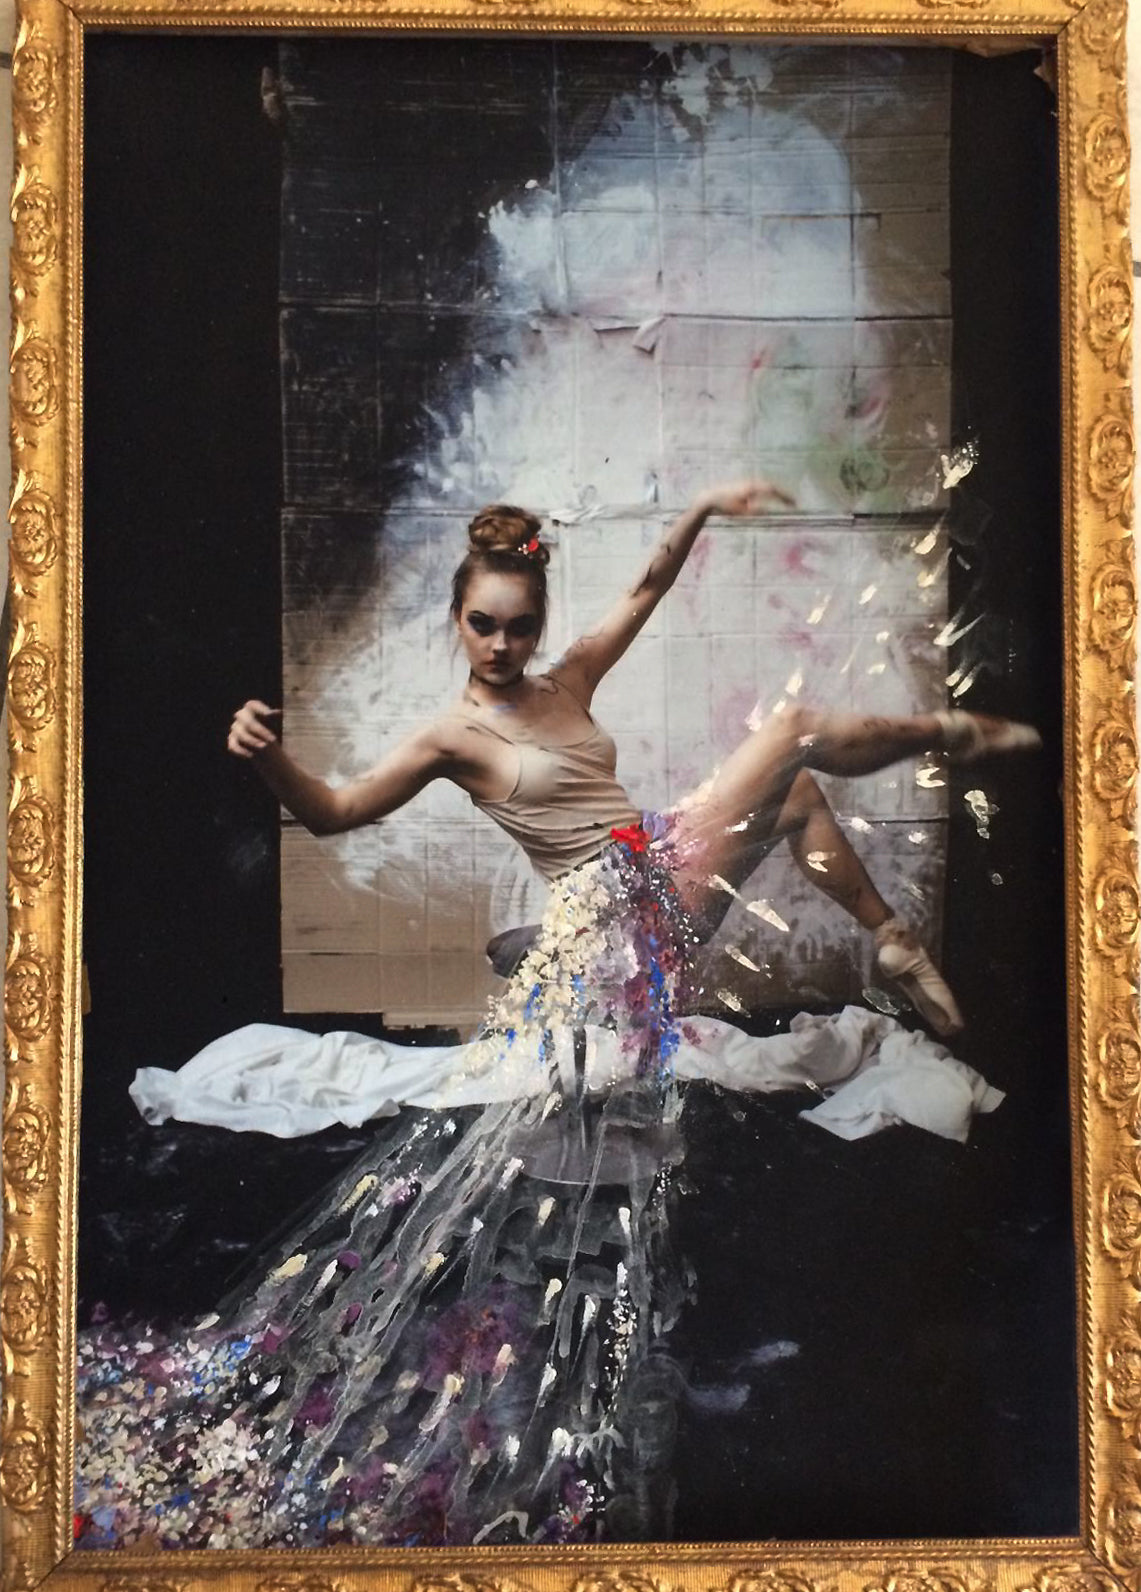 Gold framed piece of a ballerina kicking her legs in pointe shoes. She has a painted skirt of iridescent flowers that blurs as she kicks.